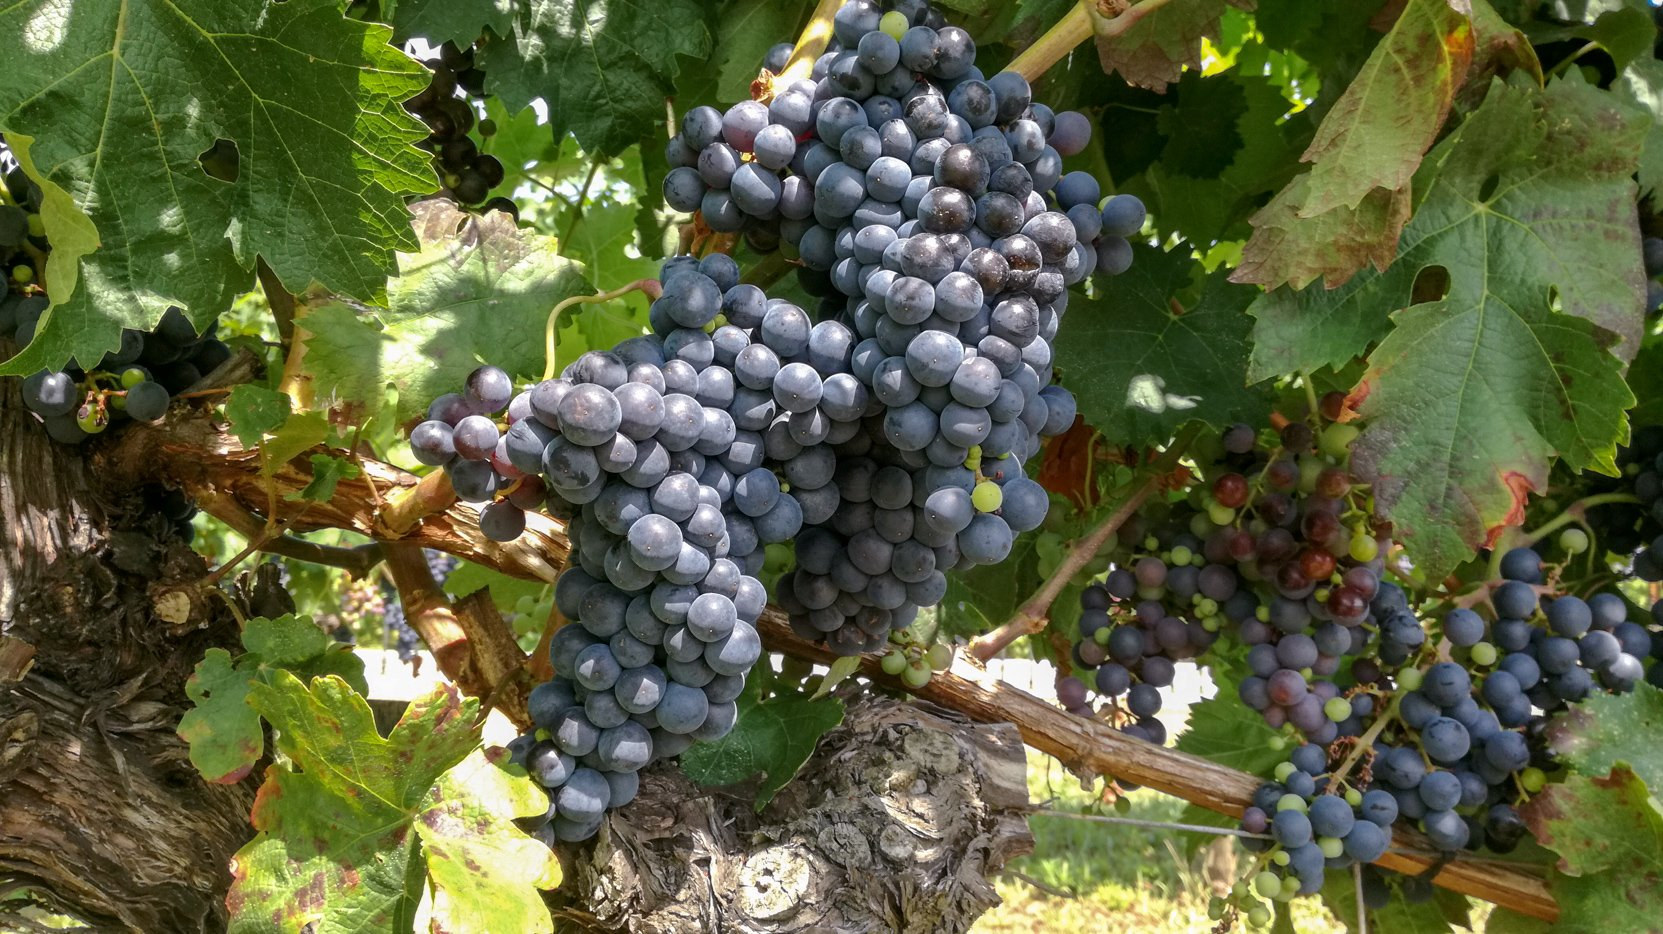 Tempranillo (Ull de Llebre) grape variety in late summer, with grapes ripening. Growing in the demonstration plot of Caves Llopart winery, Penedès, Barcelona, Spain